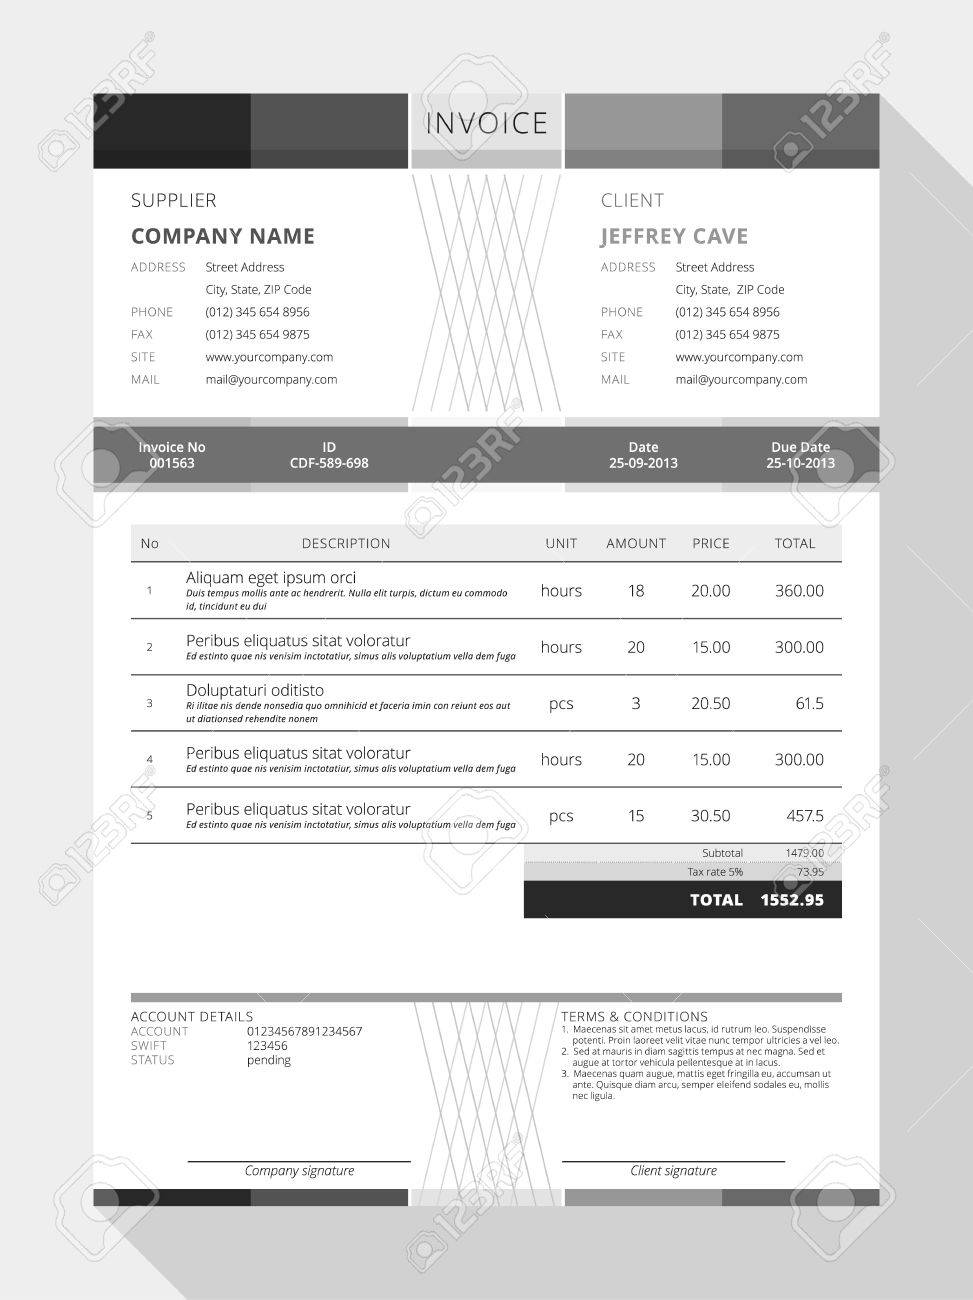 Usdgus  Unique Design An Invoice  Professional Graphic Design Invoice  With Handsome Vector Customizable Invoice Form Template Design Vector   Design An Invoice With Cute Generic Commercial Invoice Also Paper Invoices In Addition Google Docs Template Invoice And Remittance Invoice As Well As Microsoft Word  Invoice Template Additionally Invoice Printable From Happytomco With Usdgus  Handsome Design An Invoice  Professional Graphic Design Invoice  With Cute Vector Customizable Invoice Form Template Design Vector   Design An Invoice And Unique Generic Commercial Invoice Also Paper Invoices In Addition Google Docs Template Invoice From Happytomco